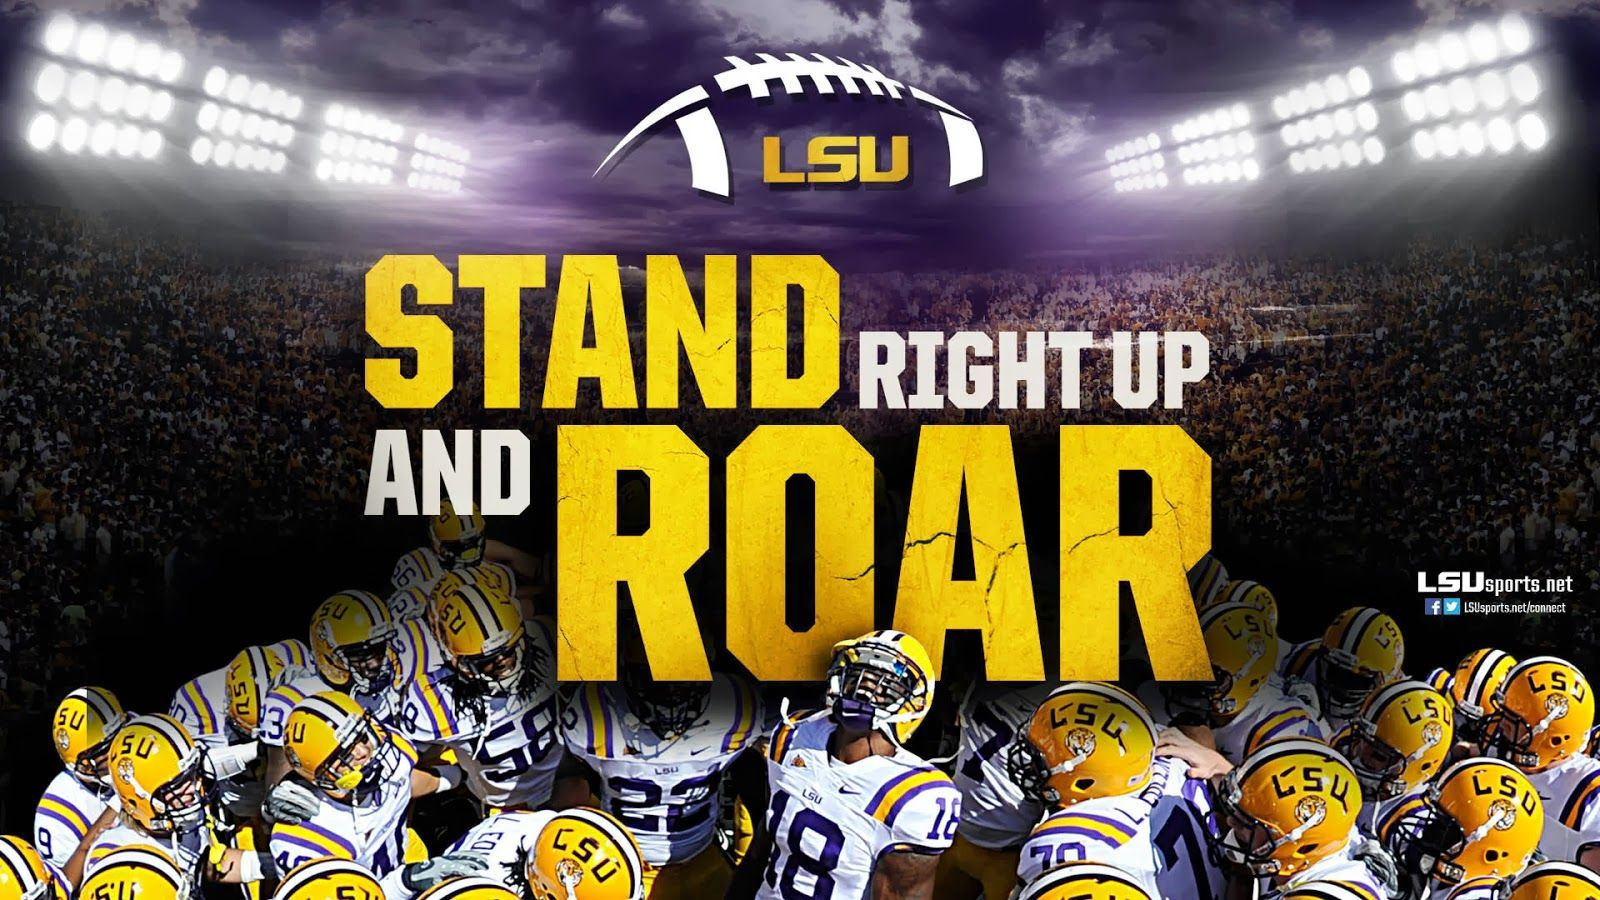 Motocross wallpaper free hd wallpapers page 0 wallpaperlepi - Lsu Football Wallpaper